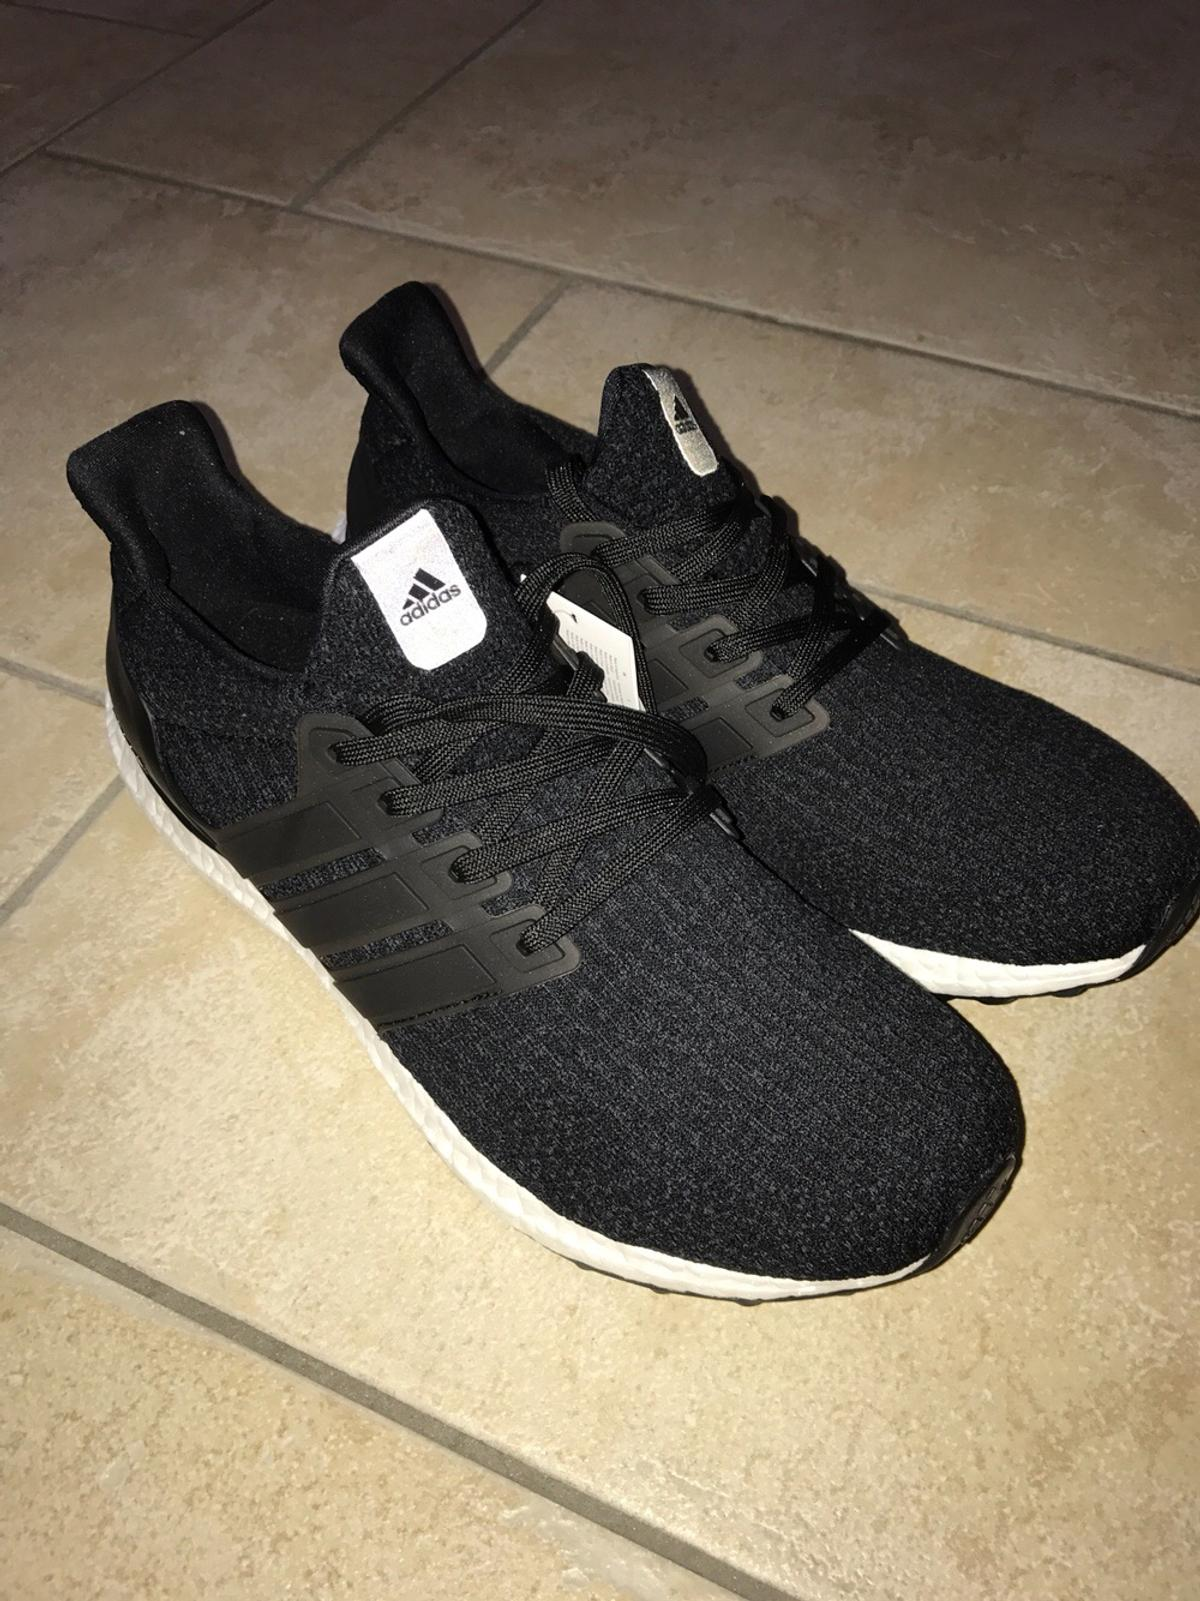 57825a89a Adidas Ultra Boost 3.0 Core Black in 85120 Hepberg for €199.00 for ...